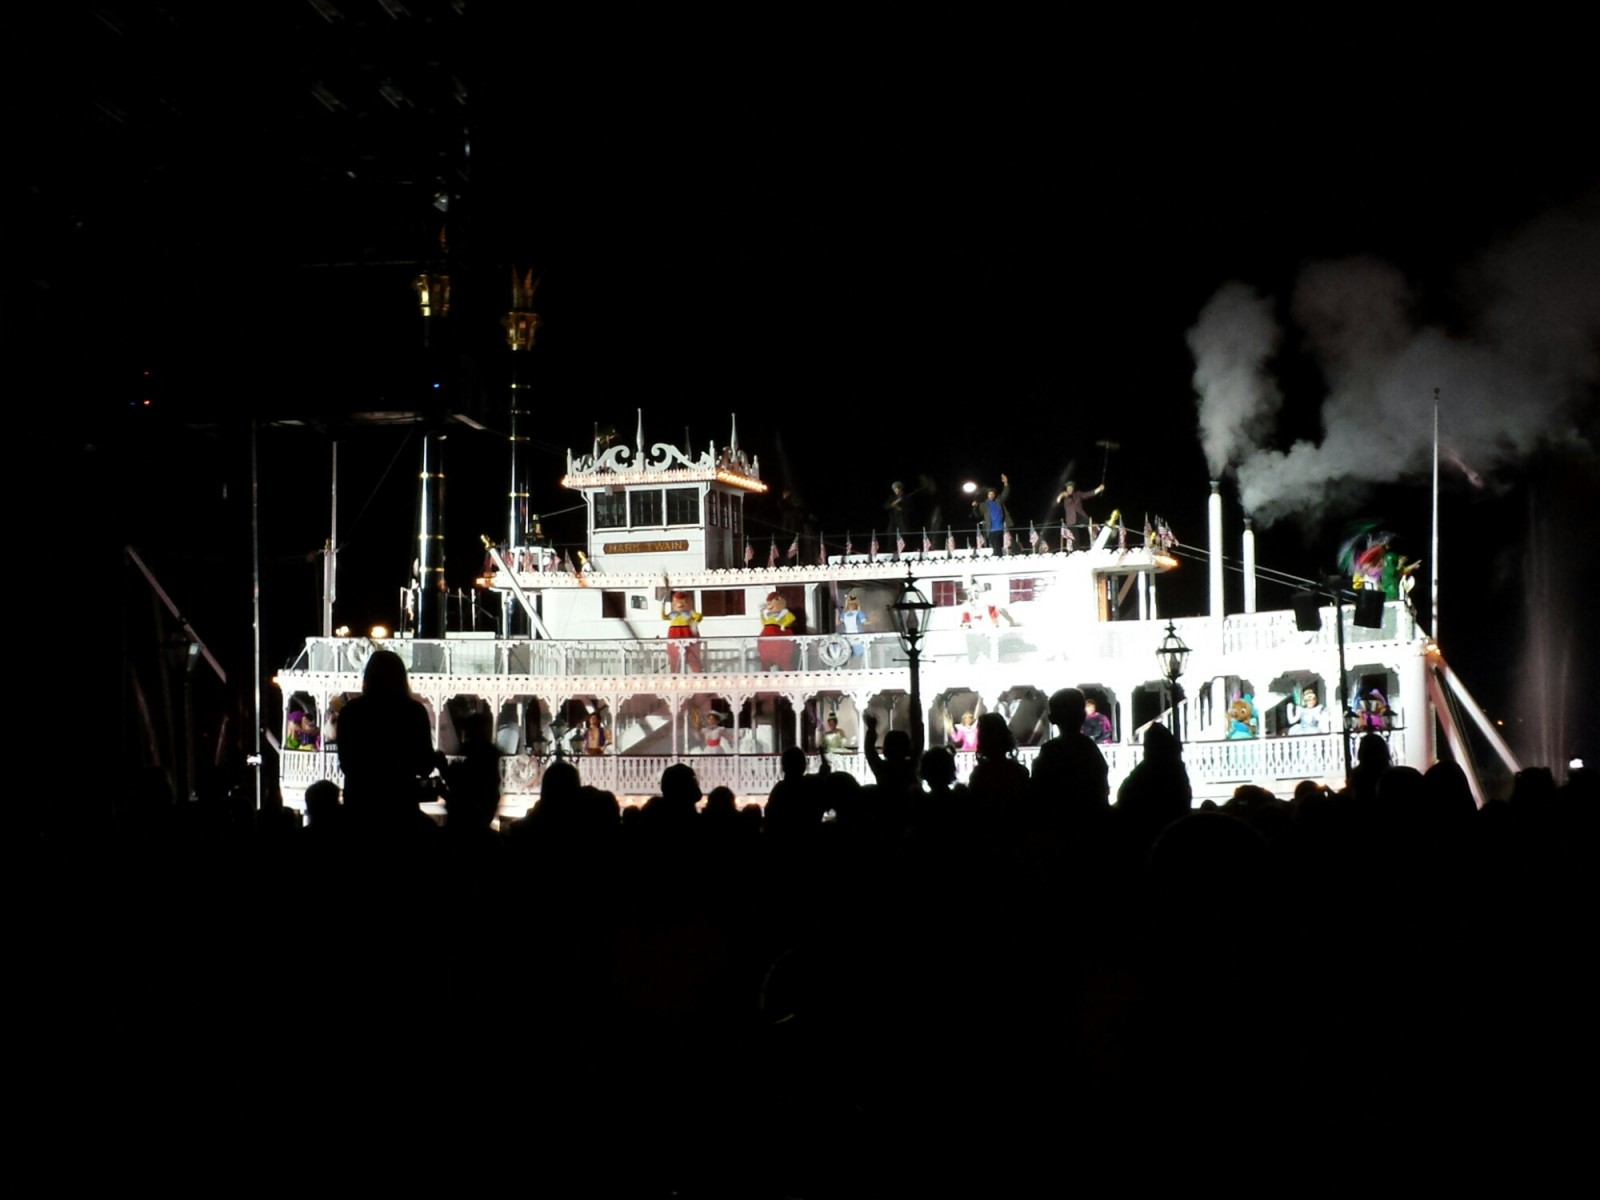 The Mark Twain sailing by #Fantasmic!